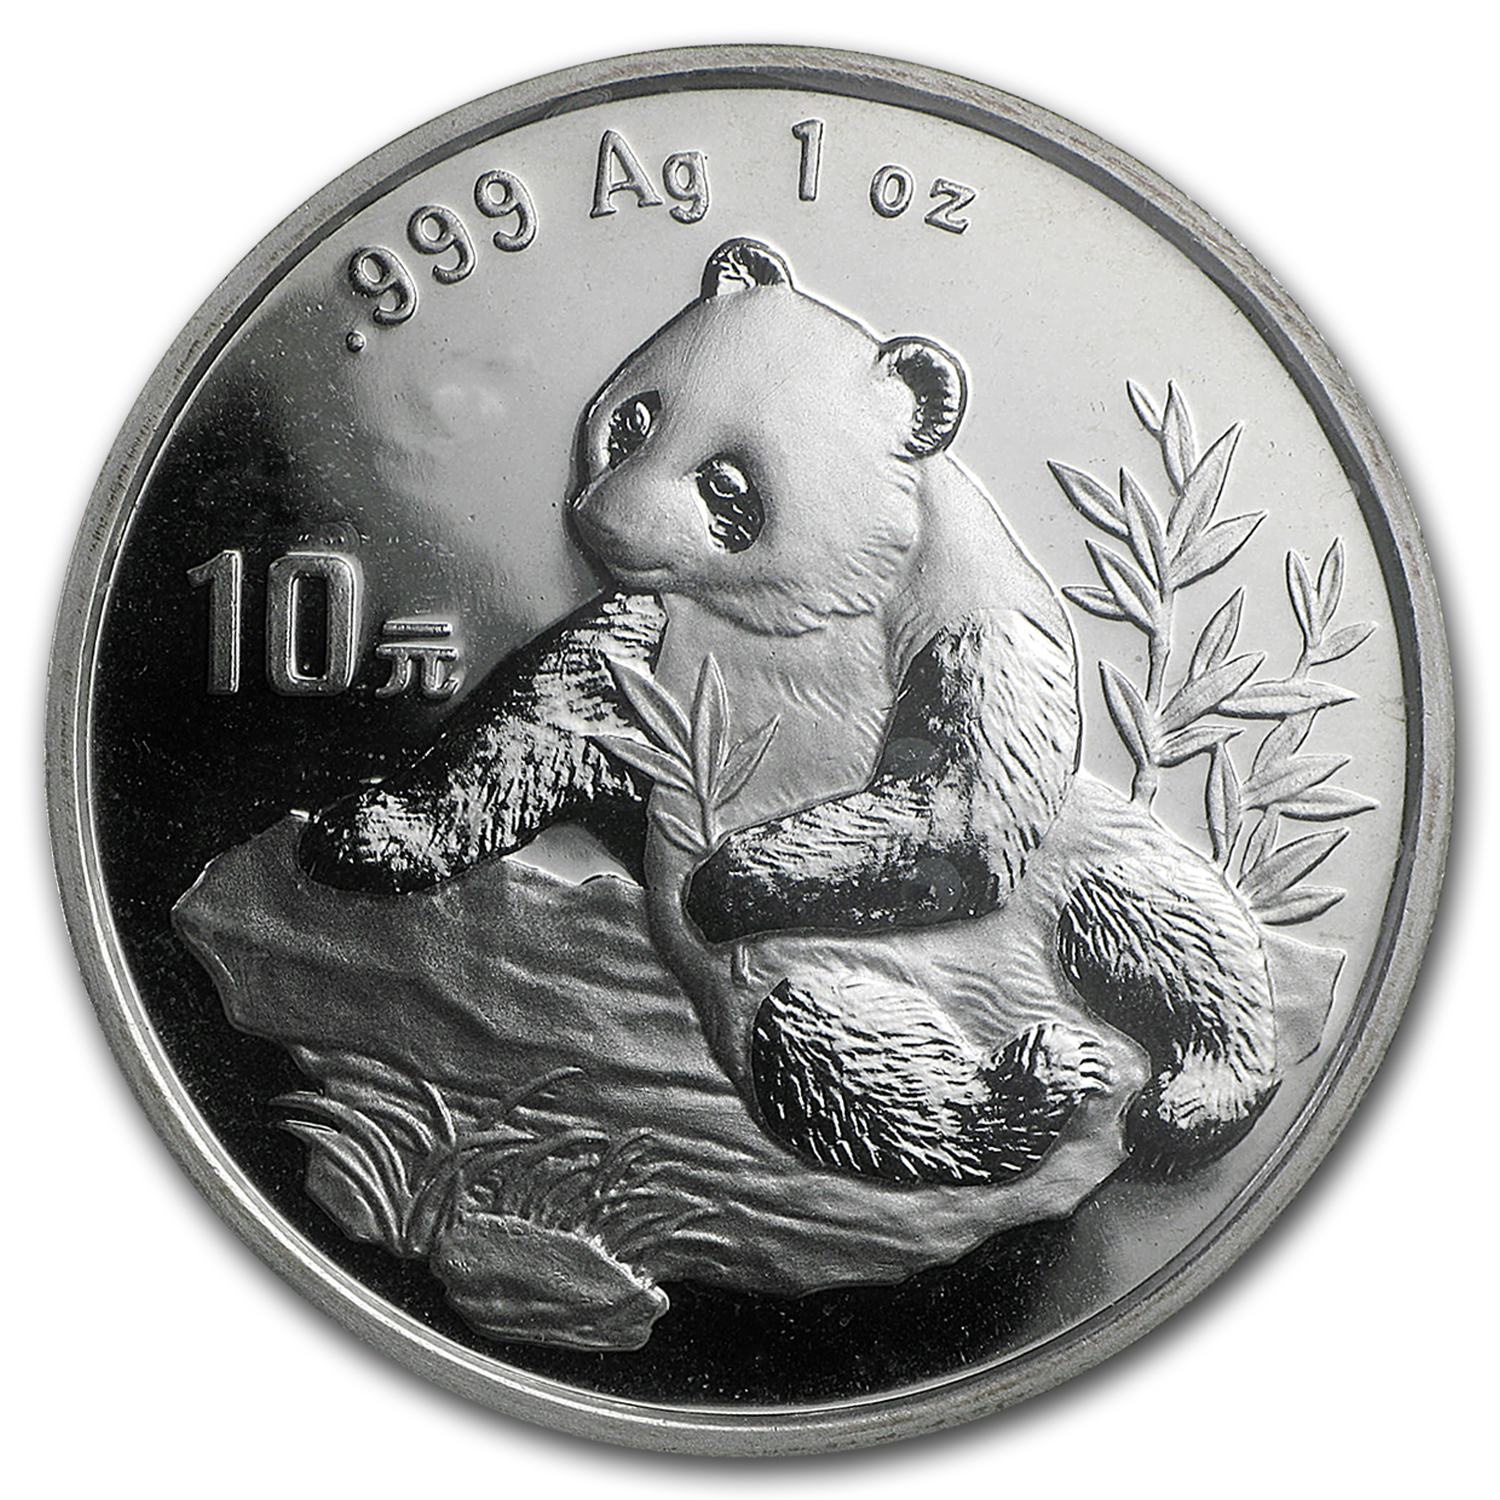 1998 China 1 oz Silver Panda Small Date BU (Sealed)